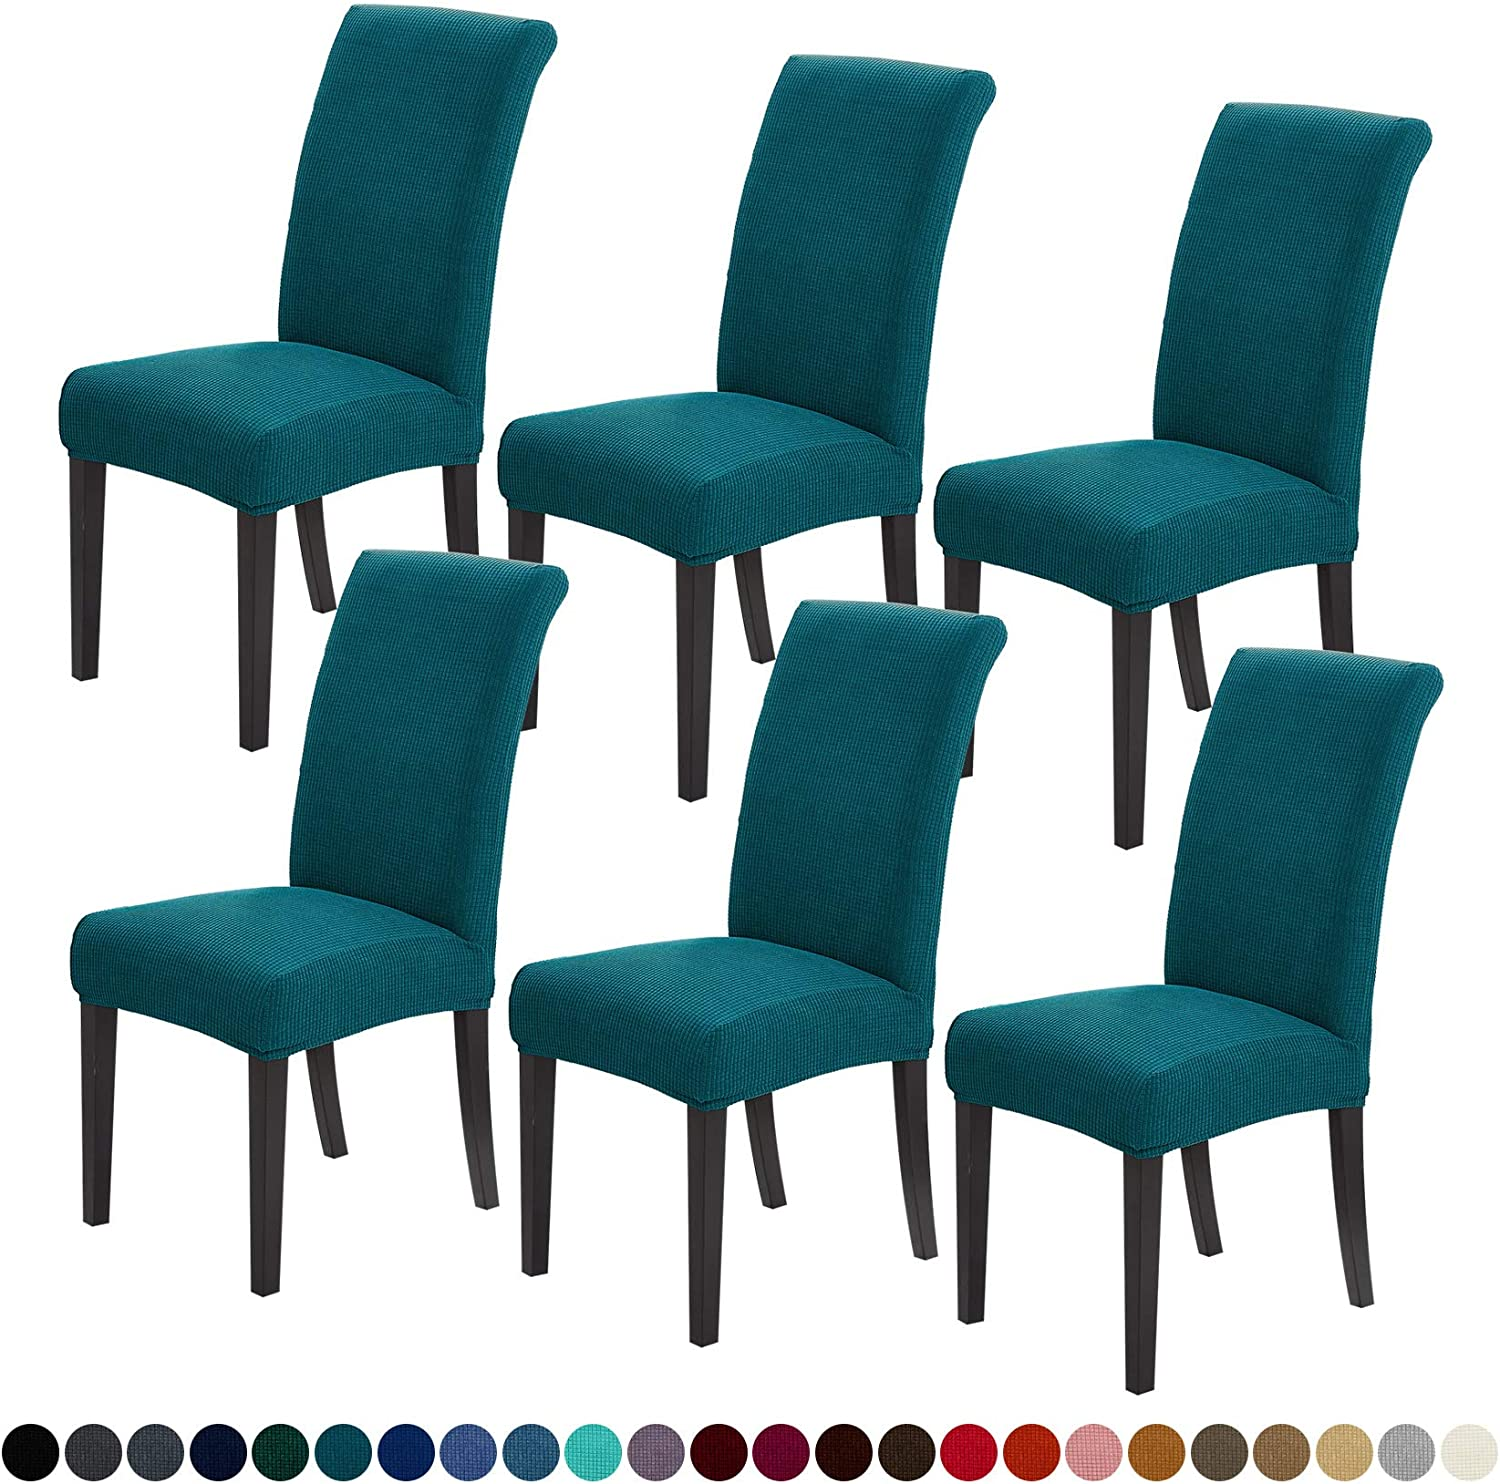 Joccun Chair Covers for Dining Room latest Repellent 2021new shipping free 6 of Set Din Water